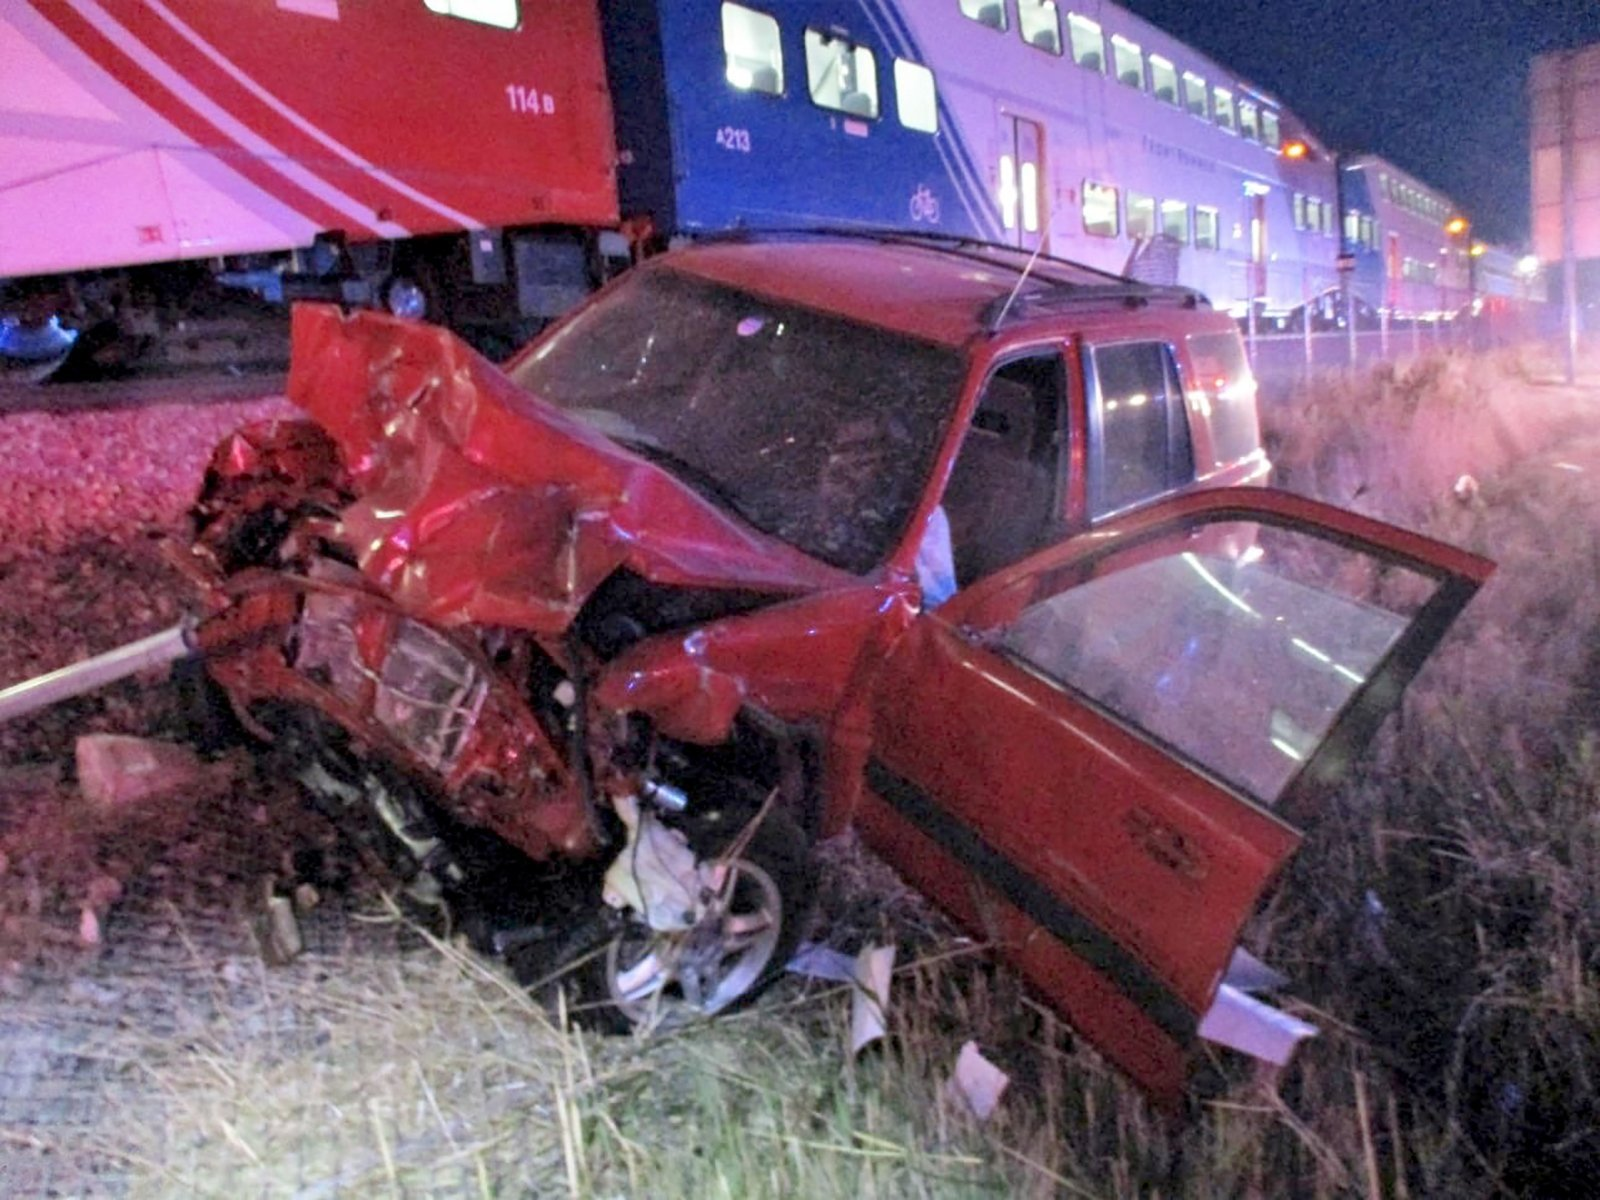 A Utah state trooper recalls the moment he rescues a man from an oncoming train